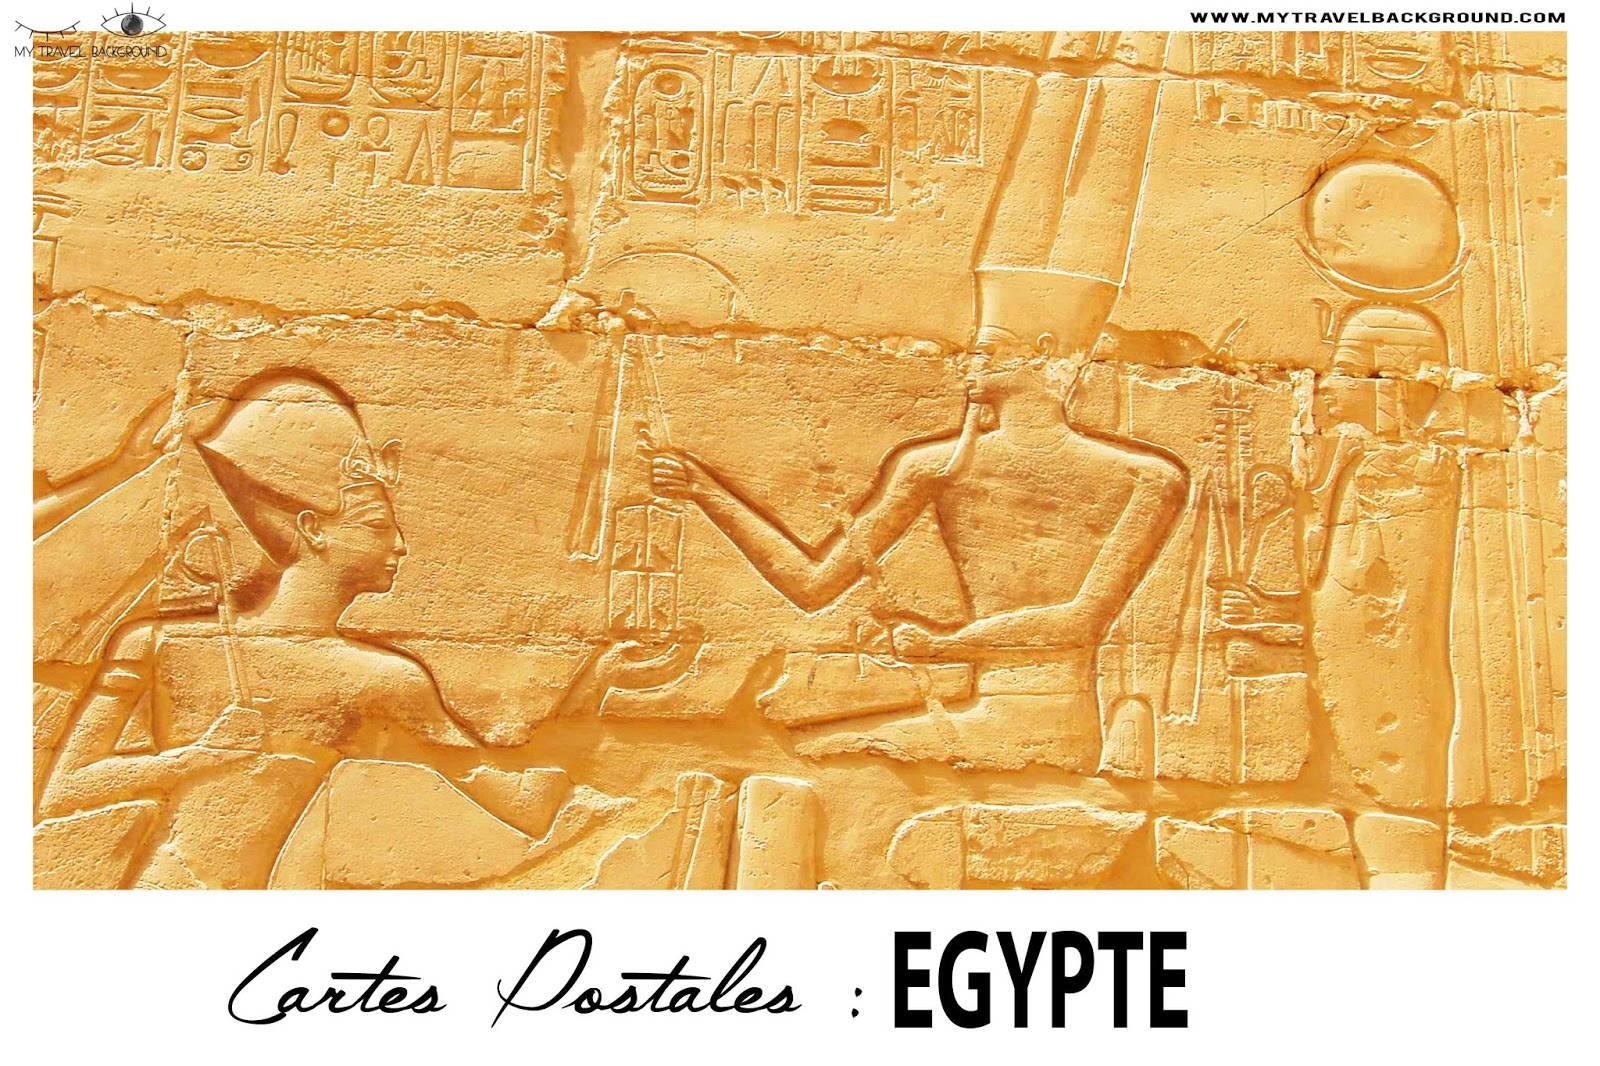 My Travel Background : Cartes Postale Egypte